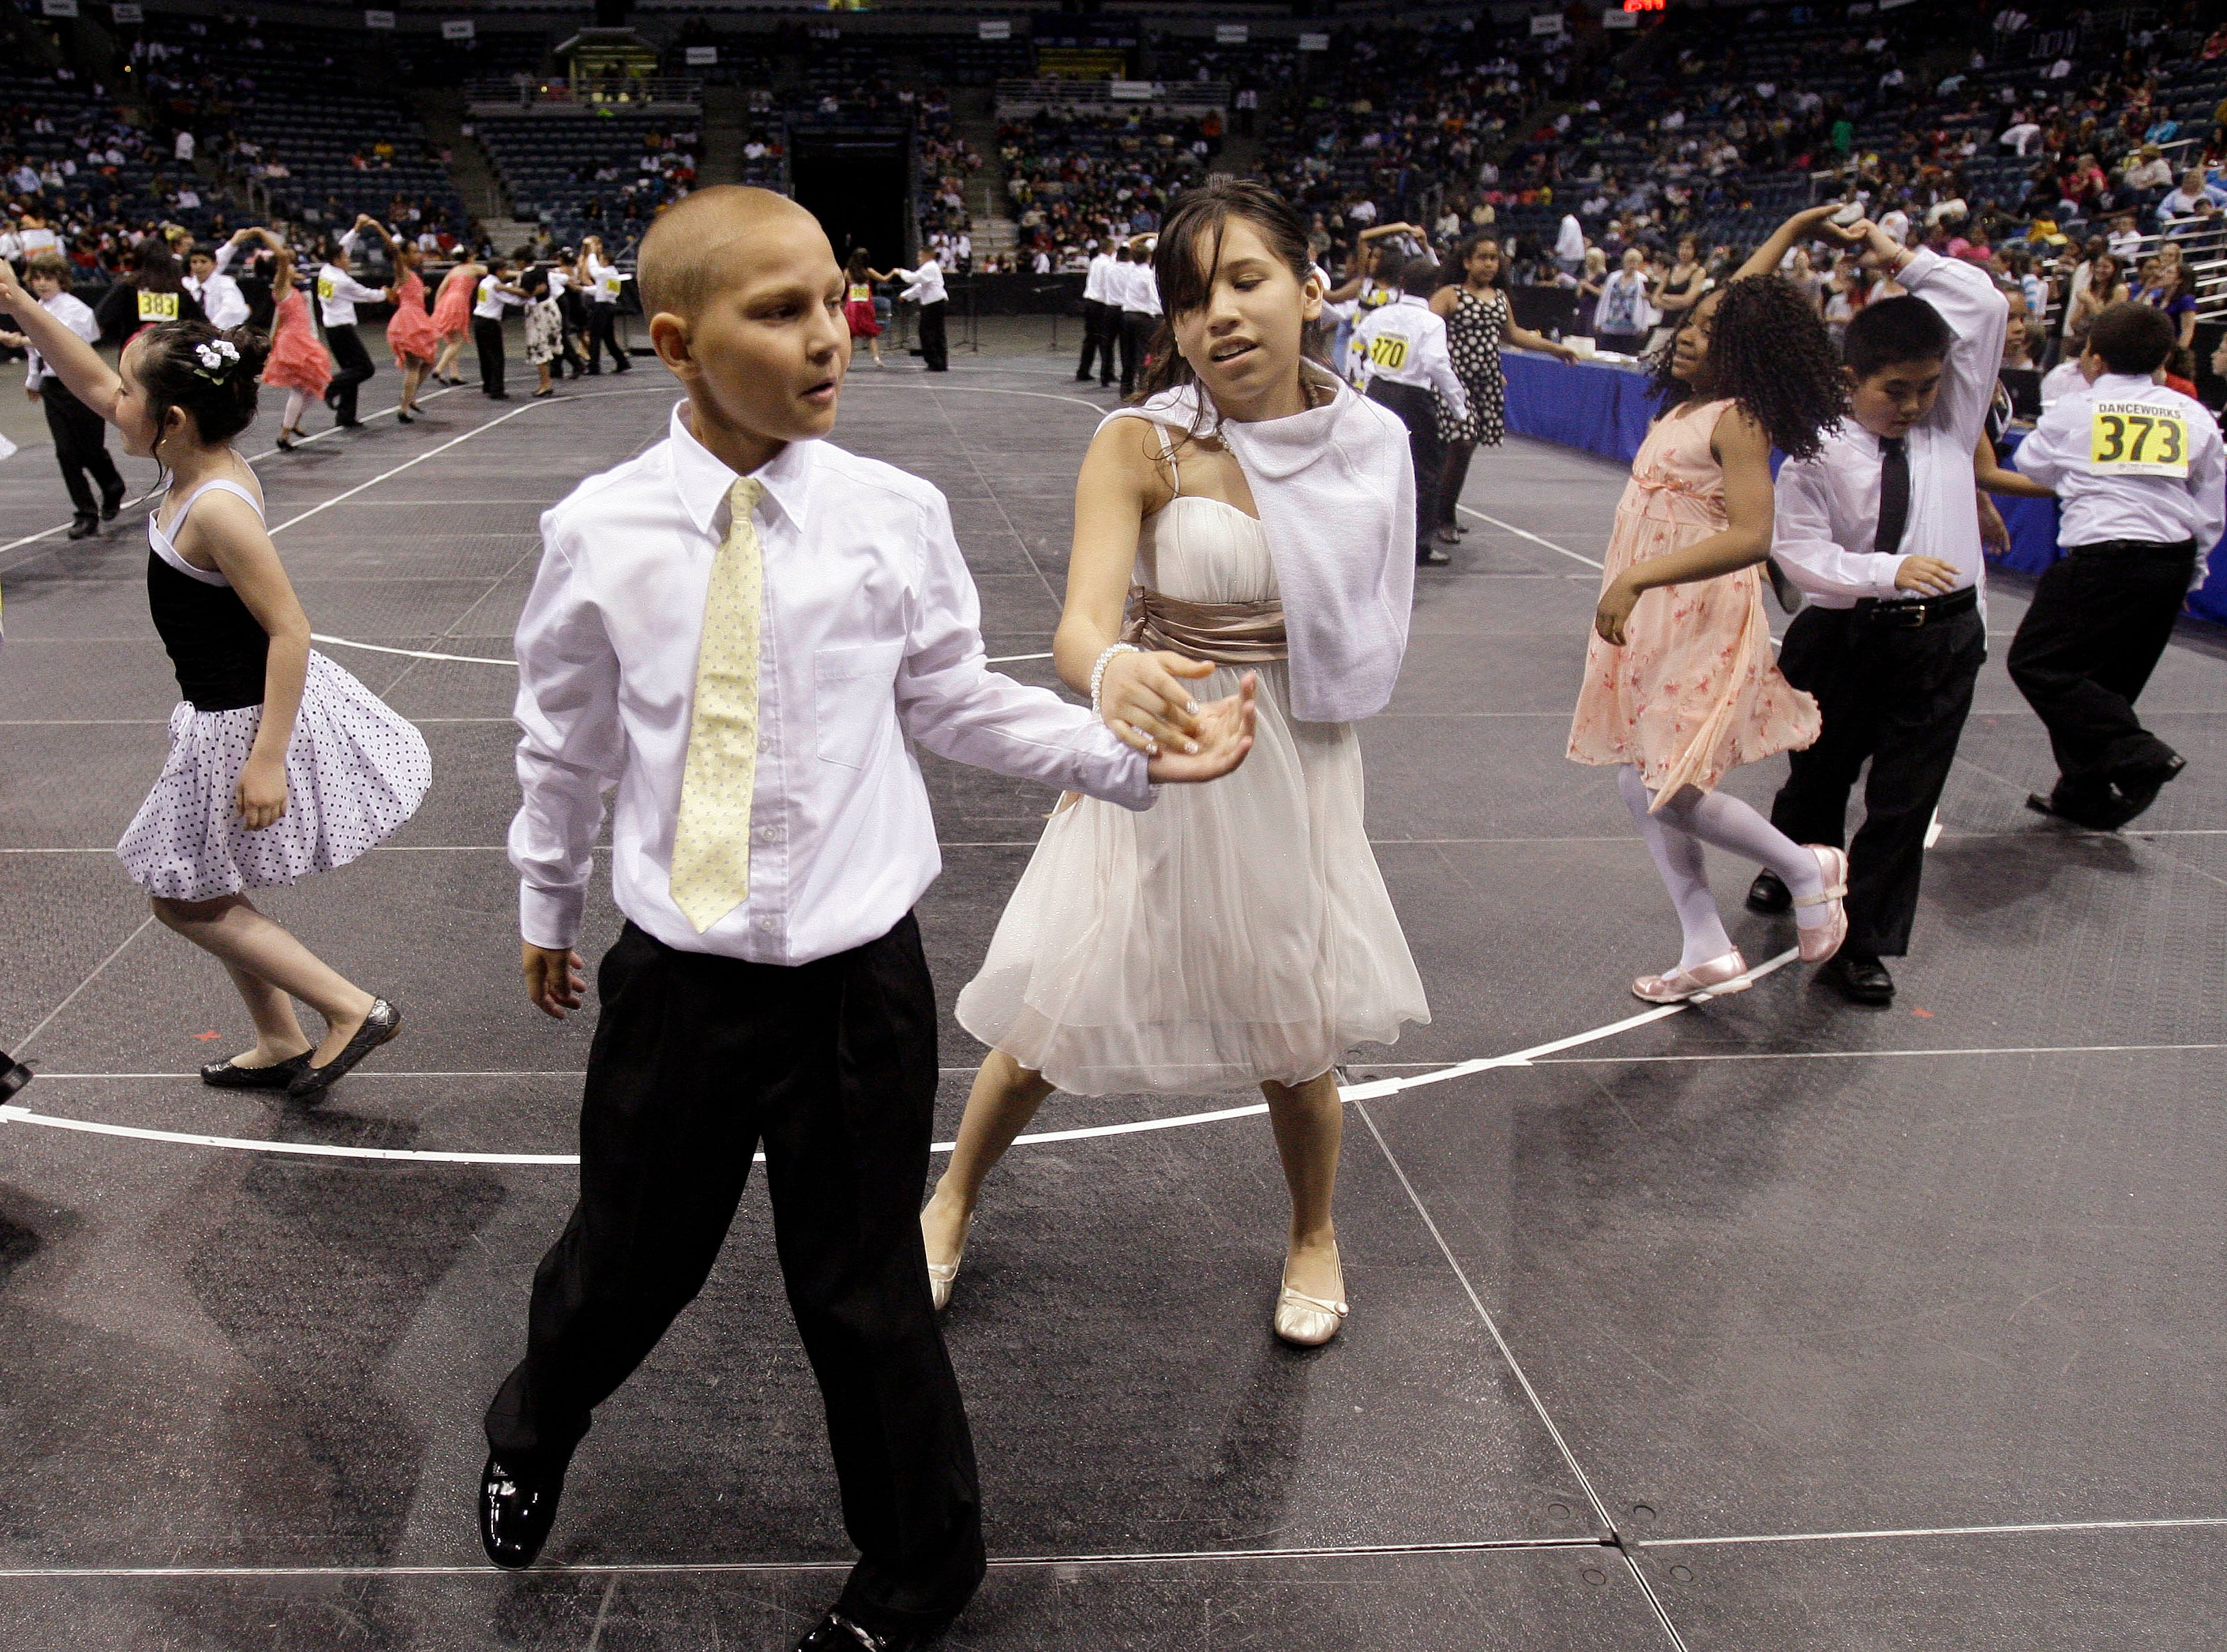 2009: Fifth graders Aaron Nelson and Brianna Hernandez dance the swing during the Third Annual Mad Hot Ballroom and Tap Competition at the Bradley Center.